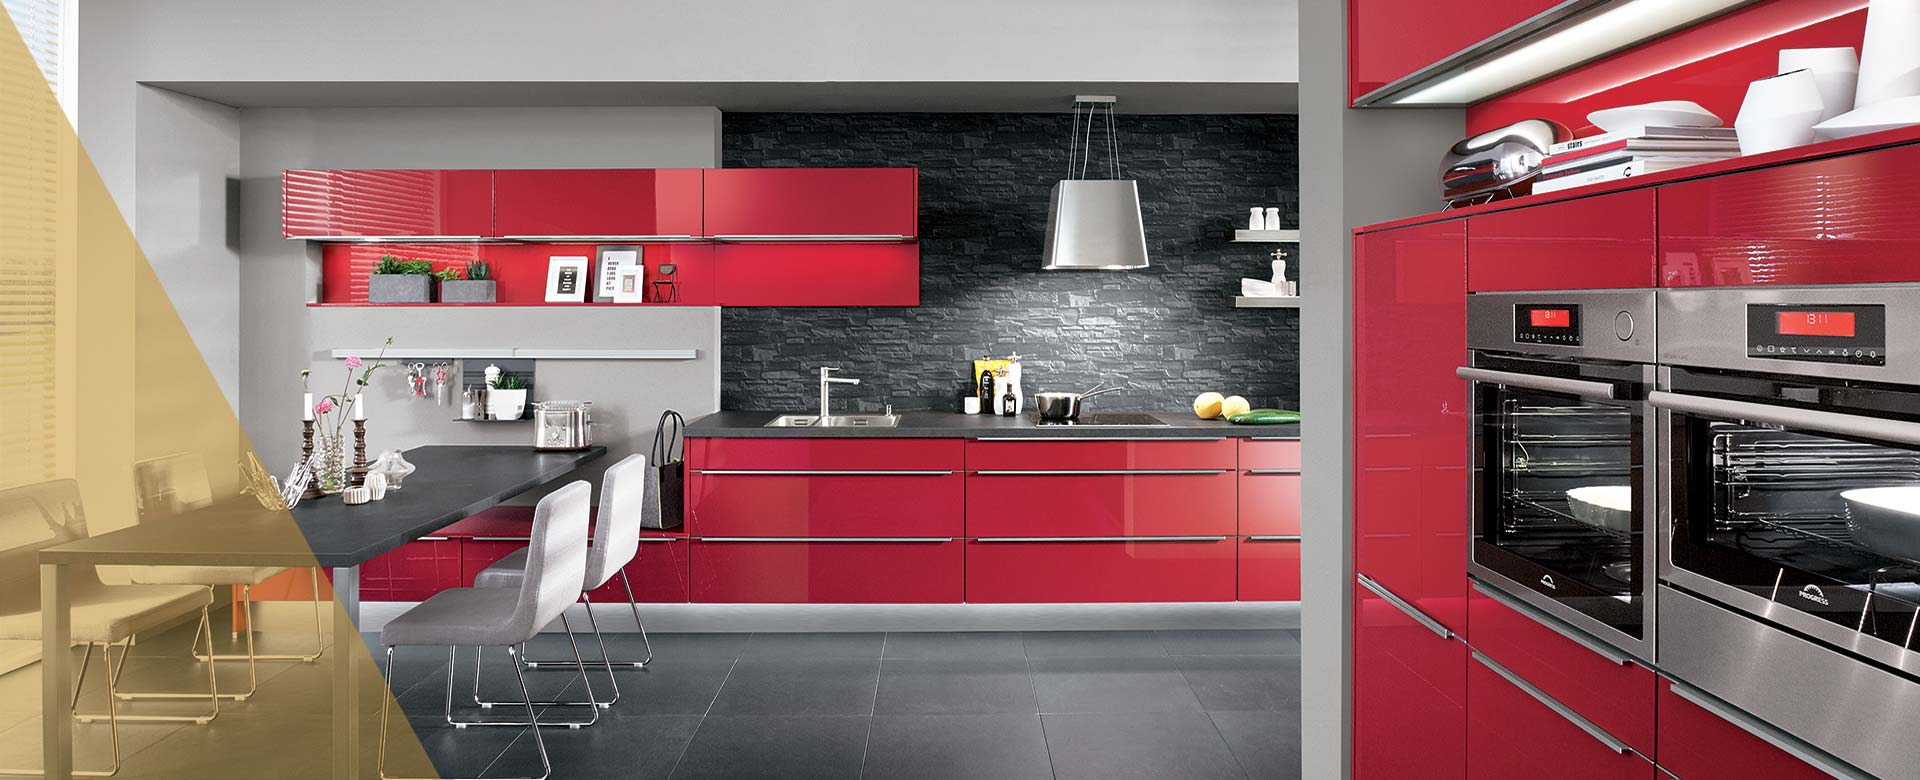 Nobilia Lux Regal Nobilia Schrnke Katalog Beautiful Smc Kitchens Pontyclun